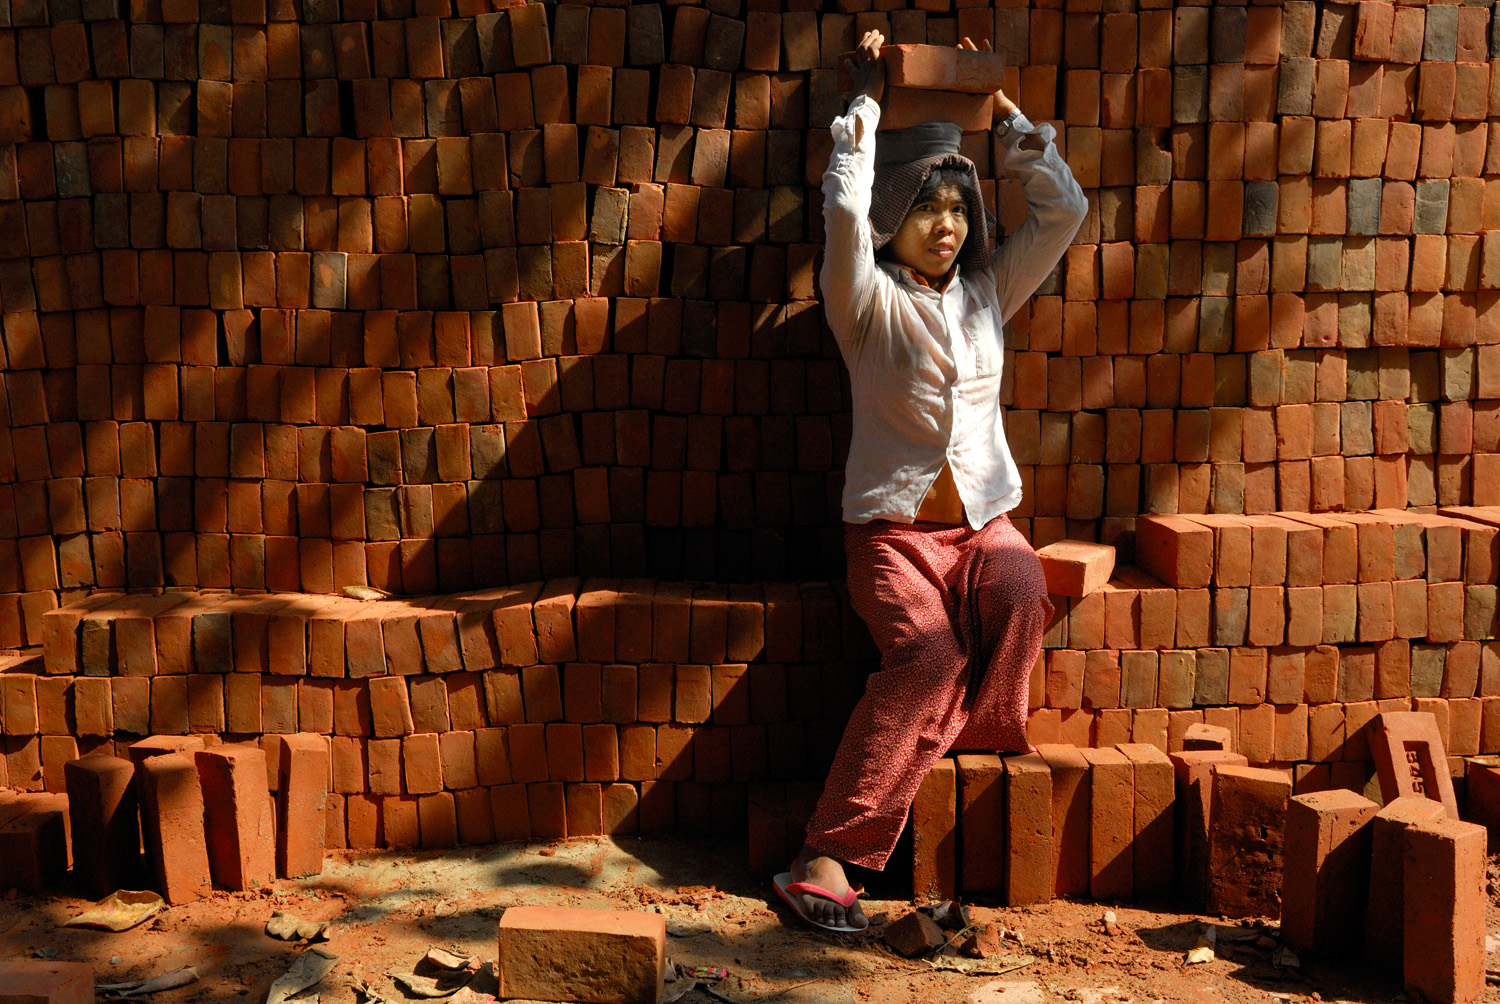 A woman carries bricks atop her head at a construction site in Mandalay, Myanmar.